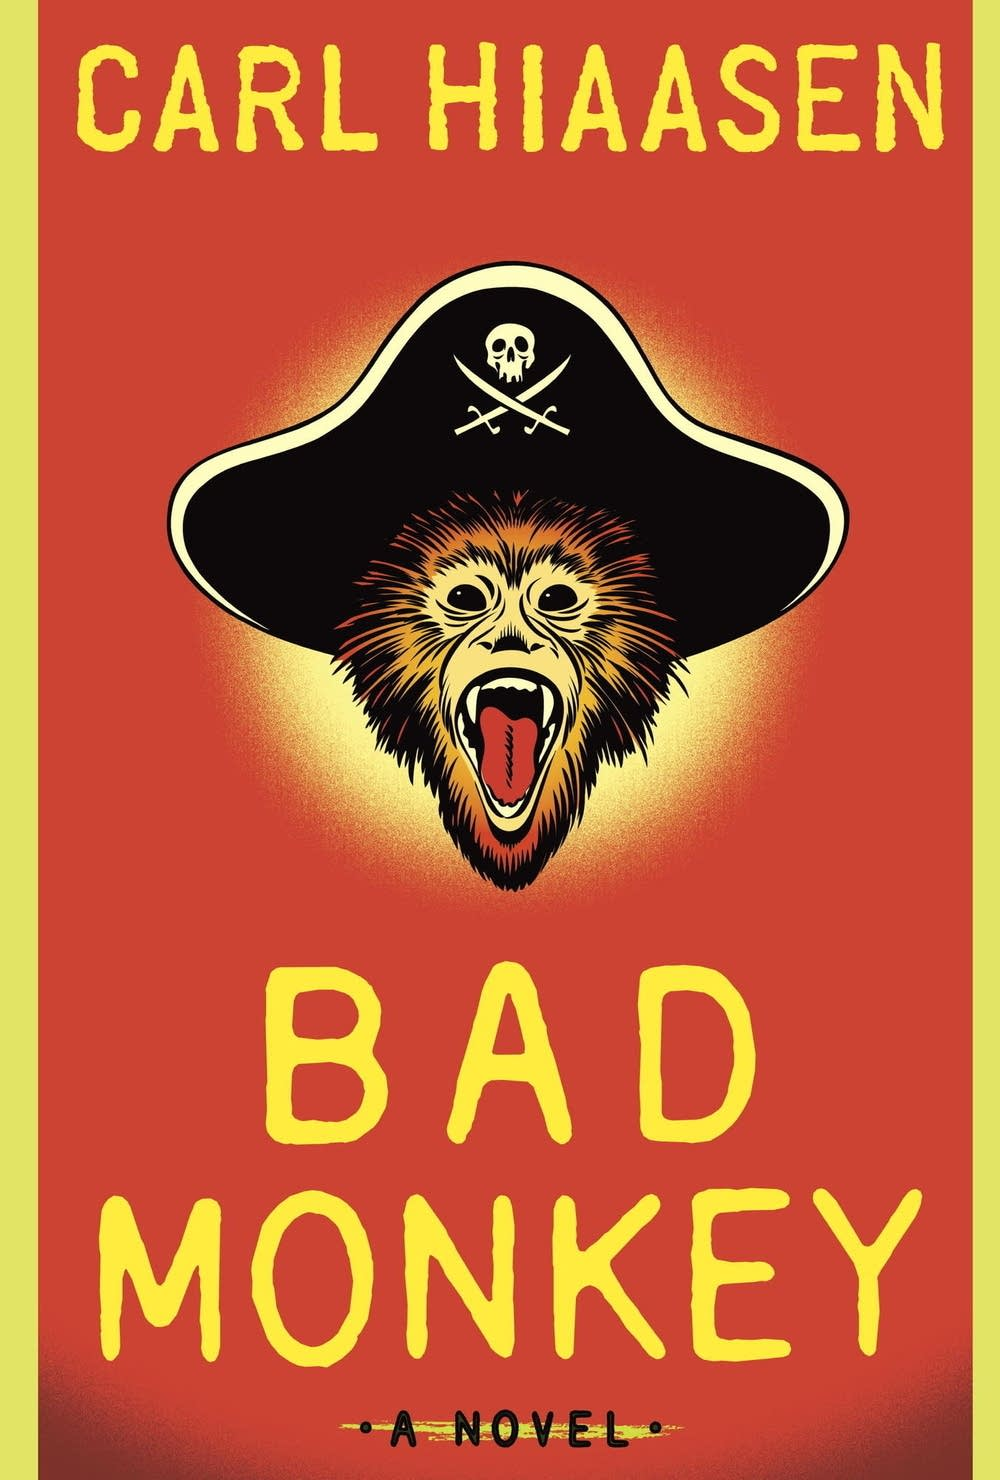 'Bad Monkey' by Carl Hiaasen